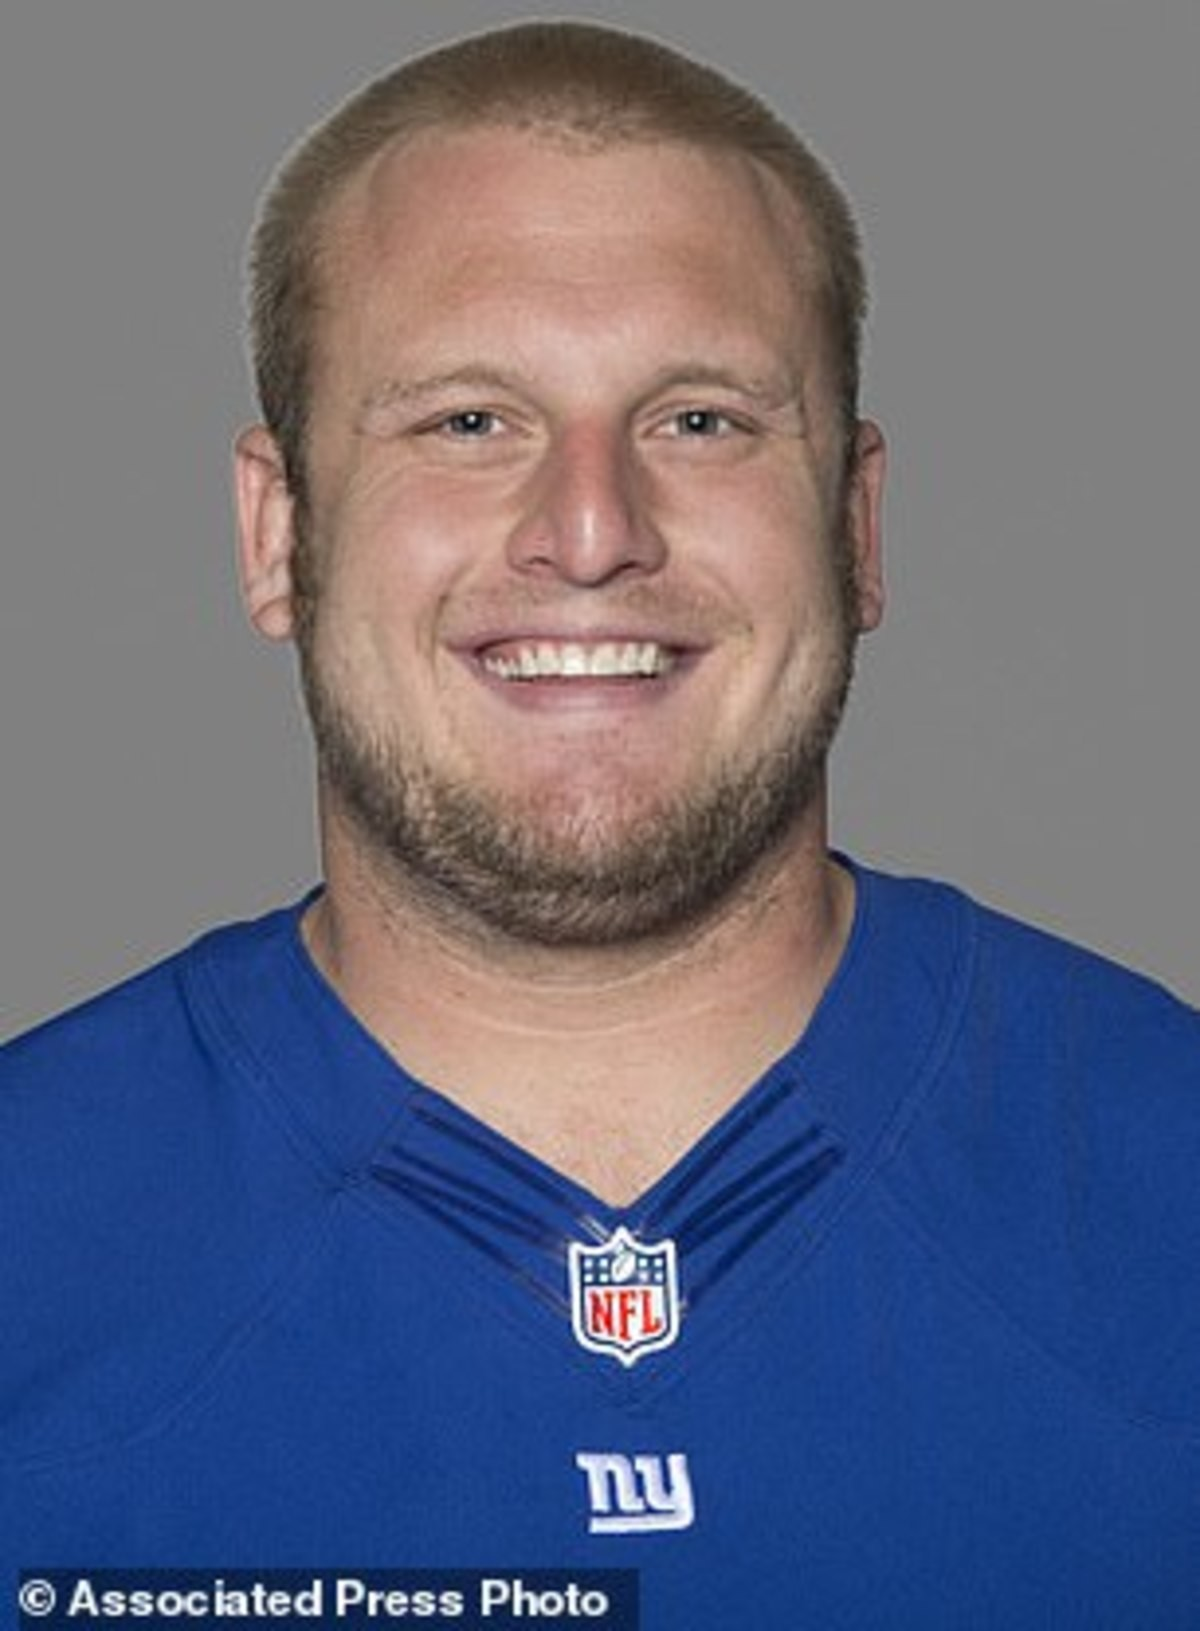 Mitch Petrus died of heat stroke. Officials say former New York Giants offensive lineman Mitch Petrus has died in Arkansas of apparent heat stroke. He was just